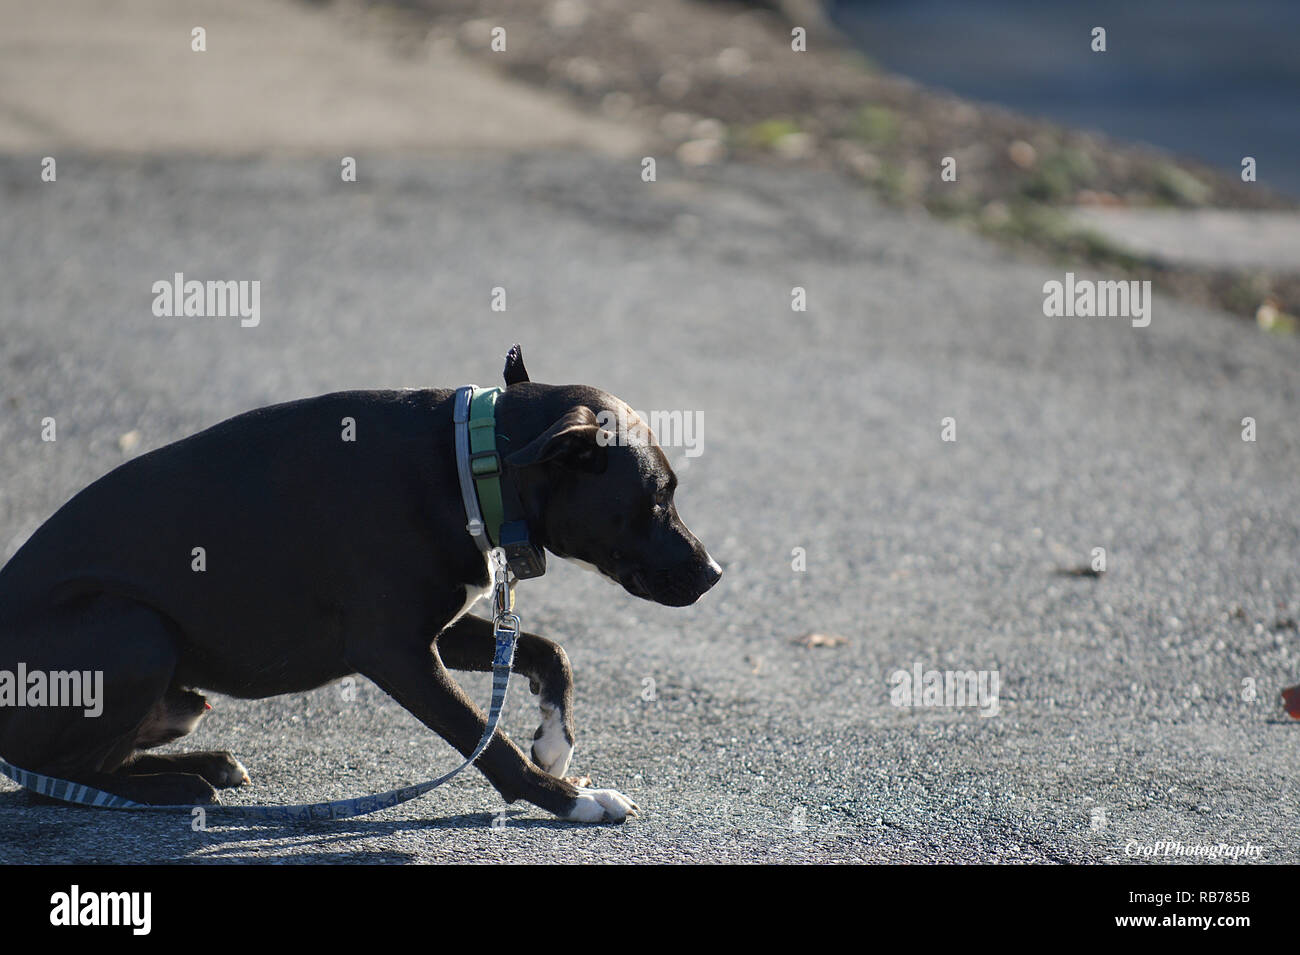 Brown short hair Dog crouching with head low on leash - Stock Image